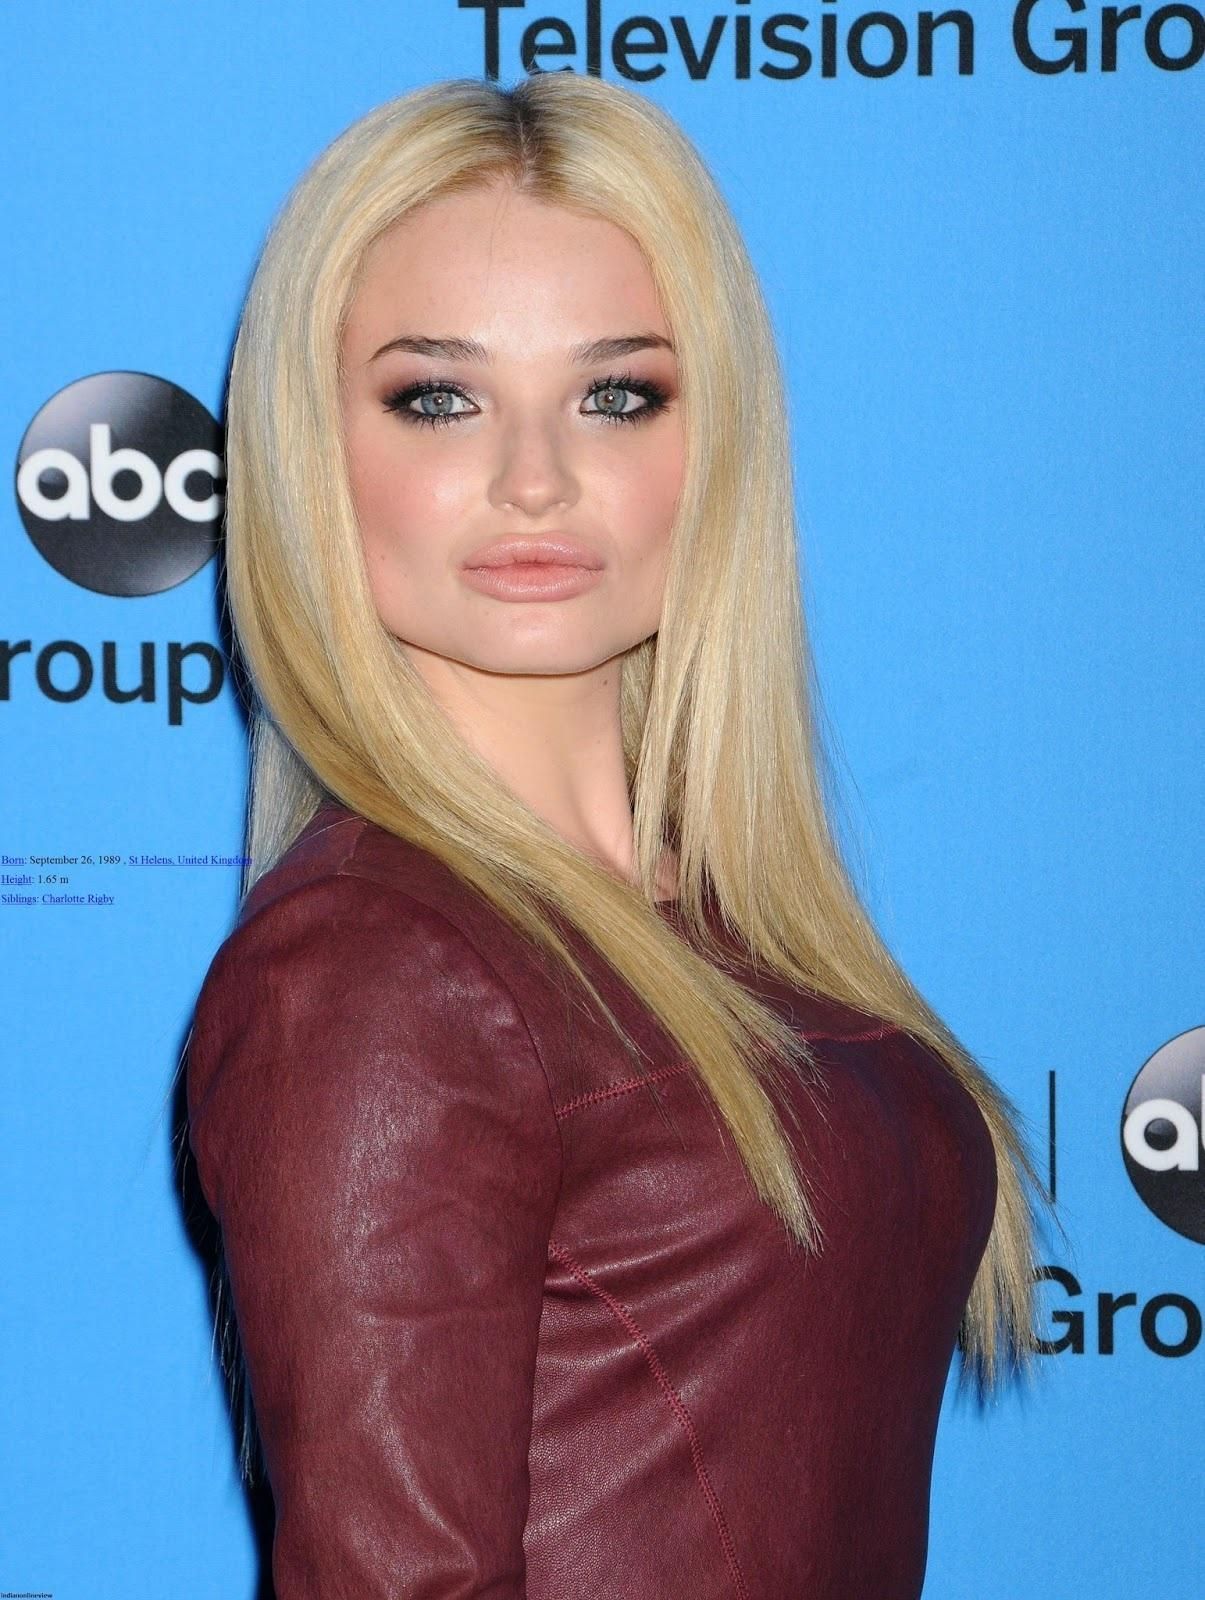 images Emma Rigby (born 1989)